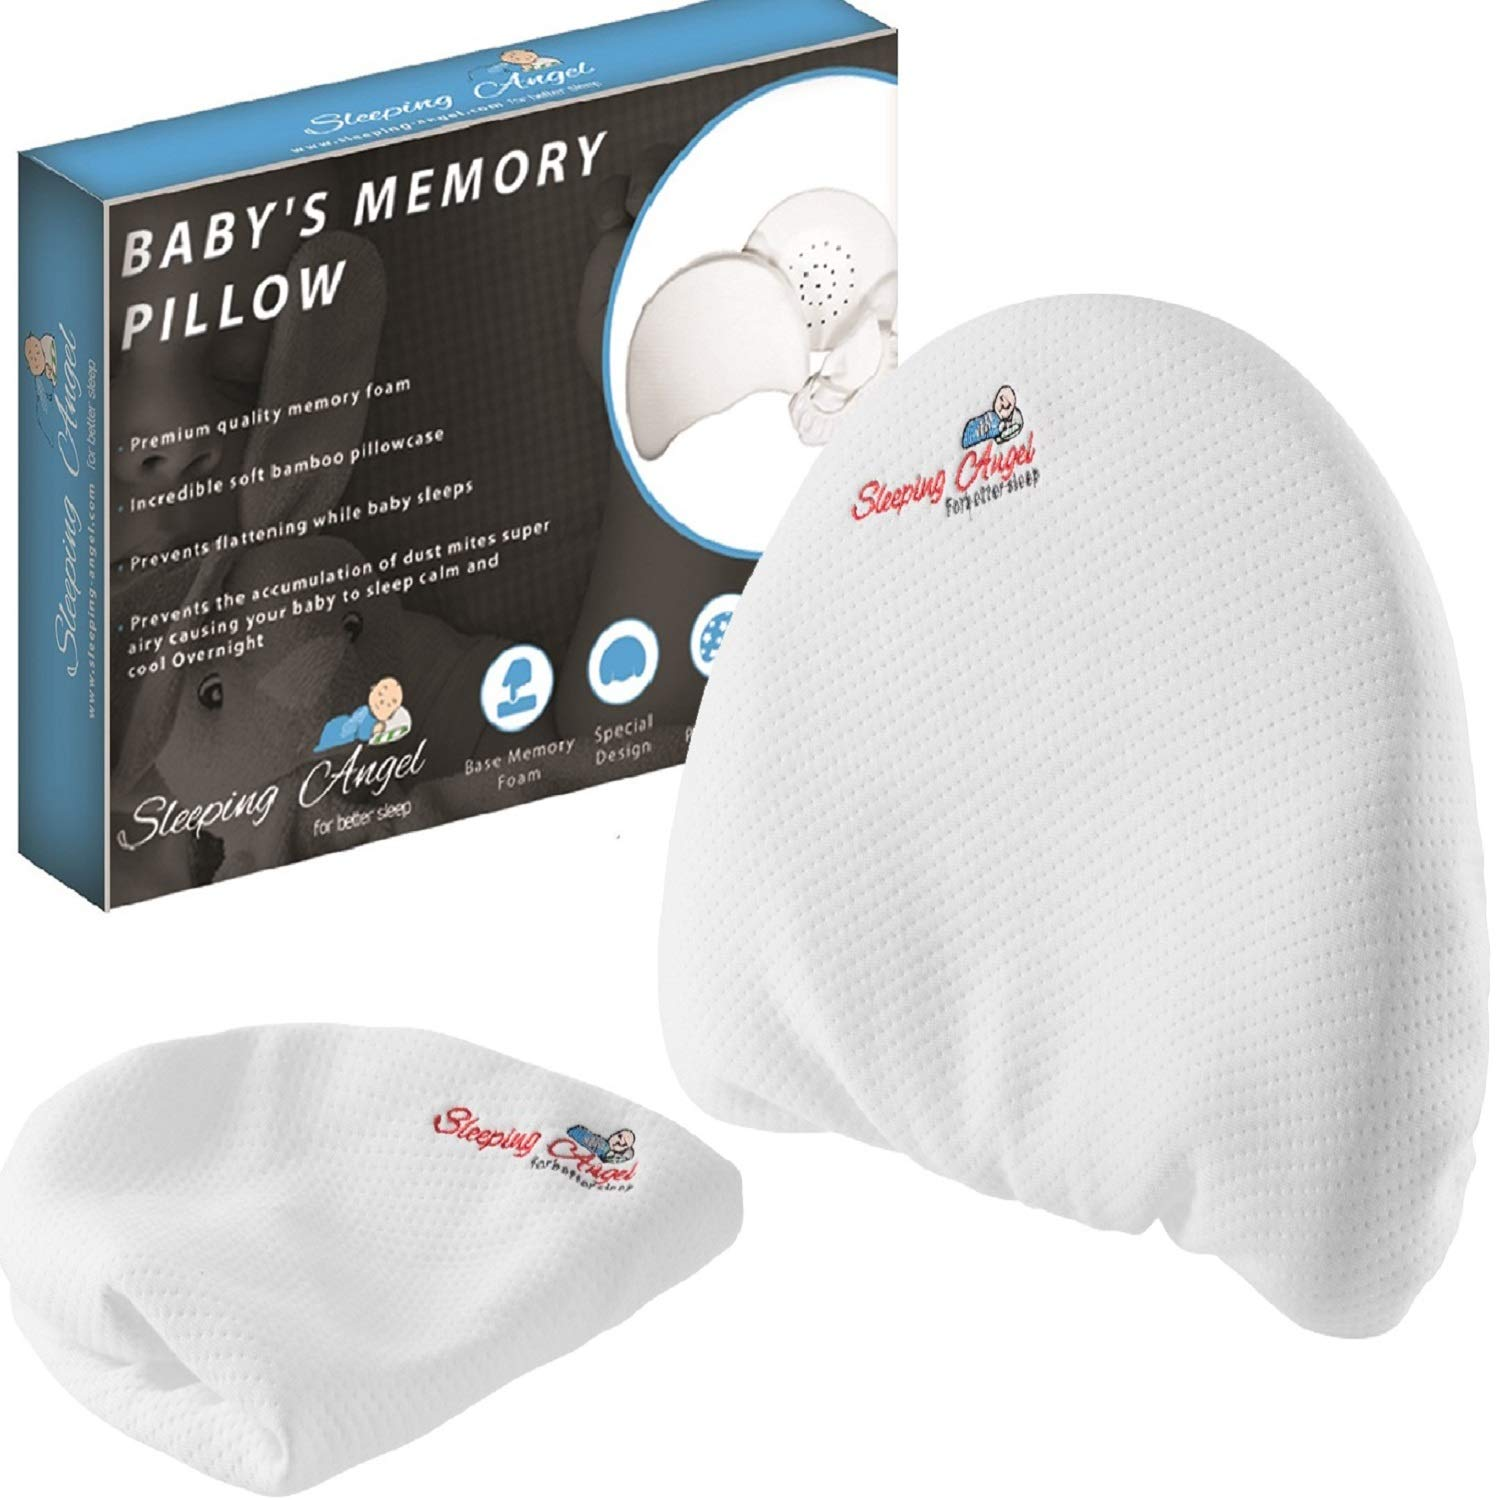 Baby Head Shaping Pillow for Newborns prevent flat head syndrome (Plagiocephaly),Rolling Over. Made of Premium Memory Foam.comes with 2 Bamboo Pillowcases.Perfect Shower Gift.